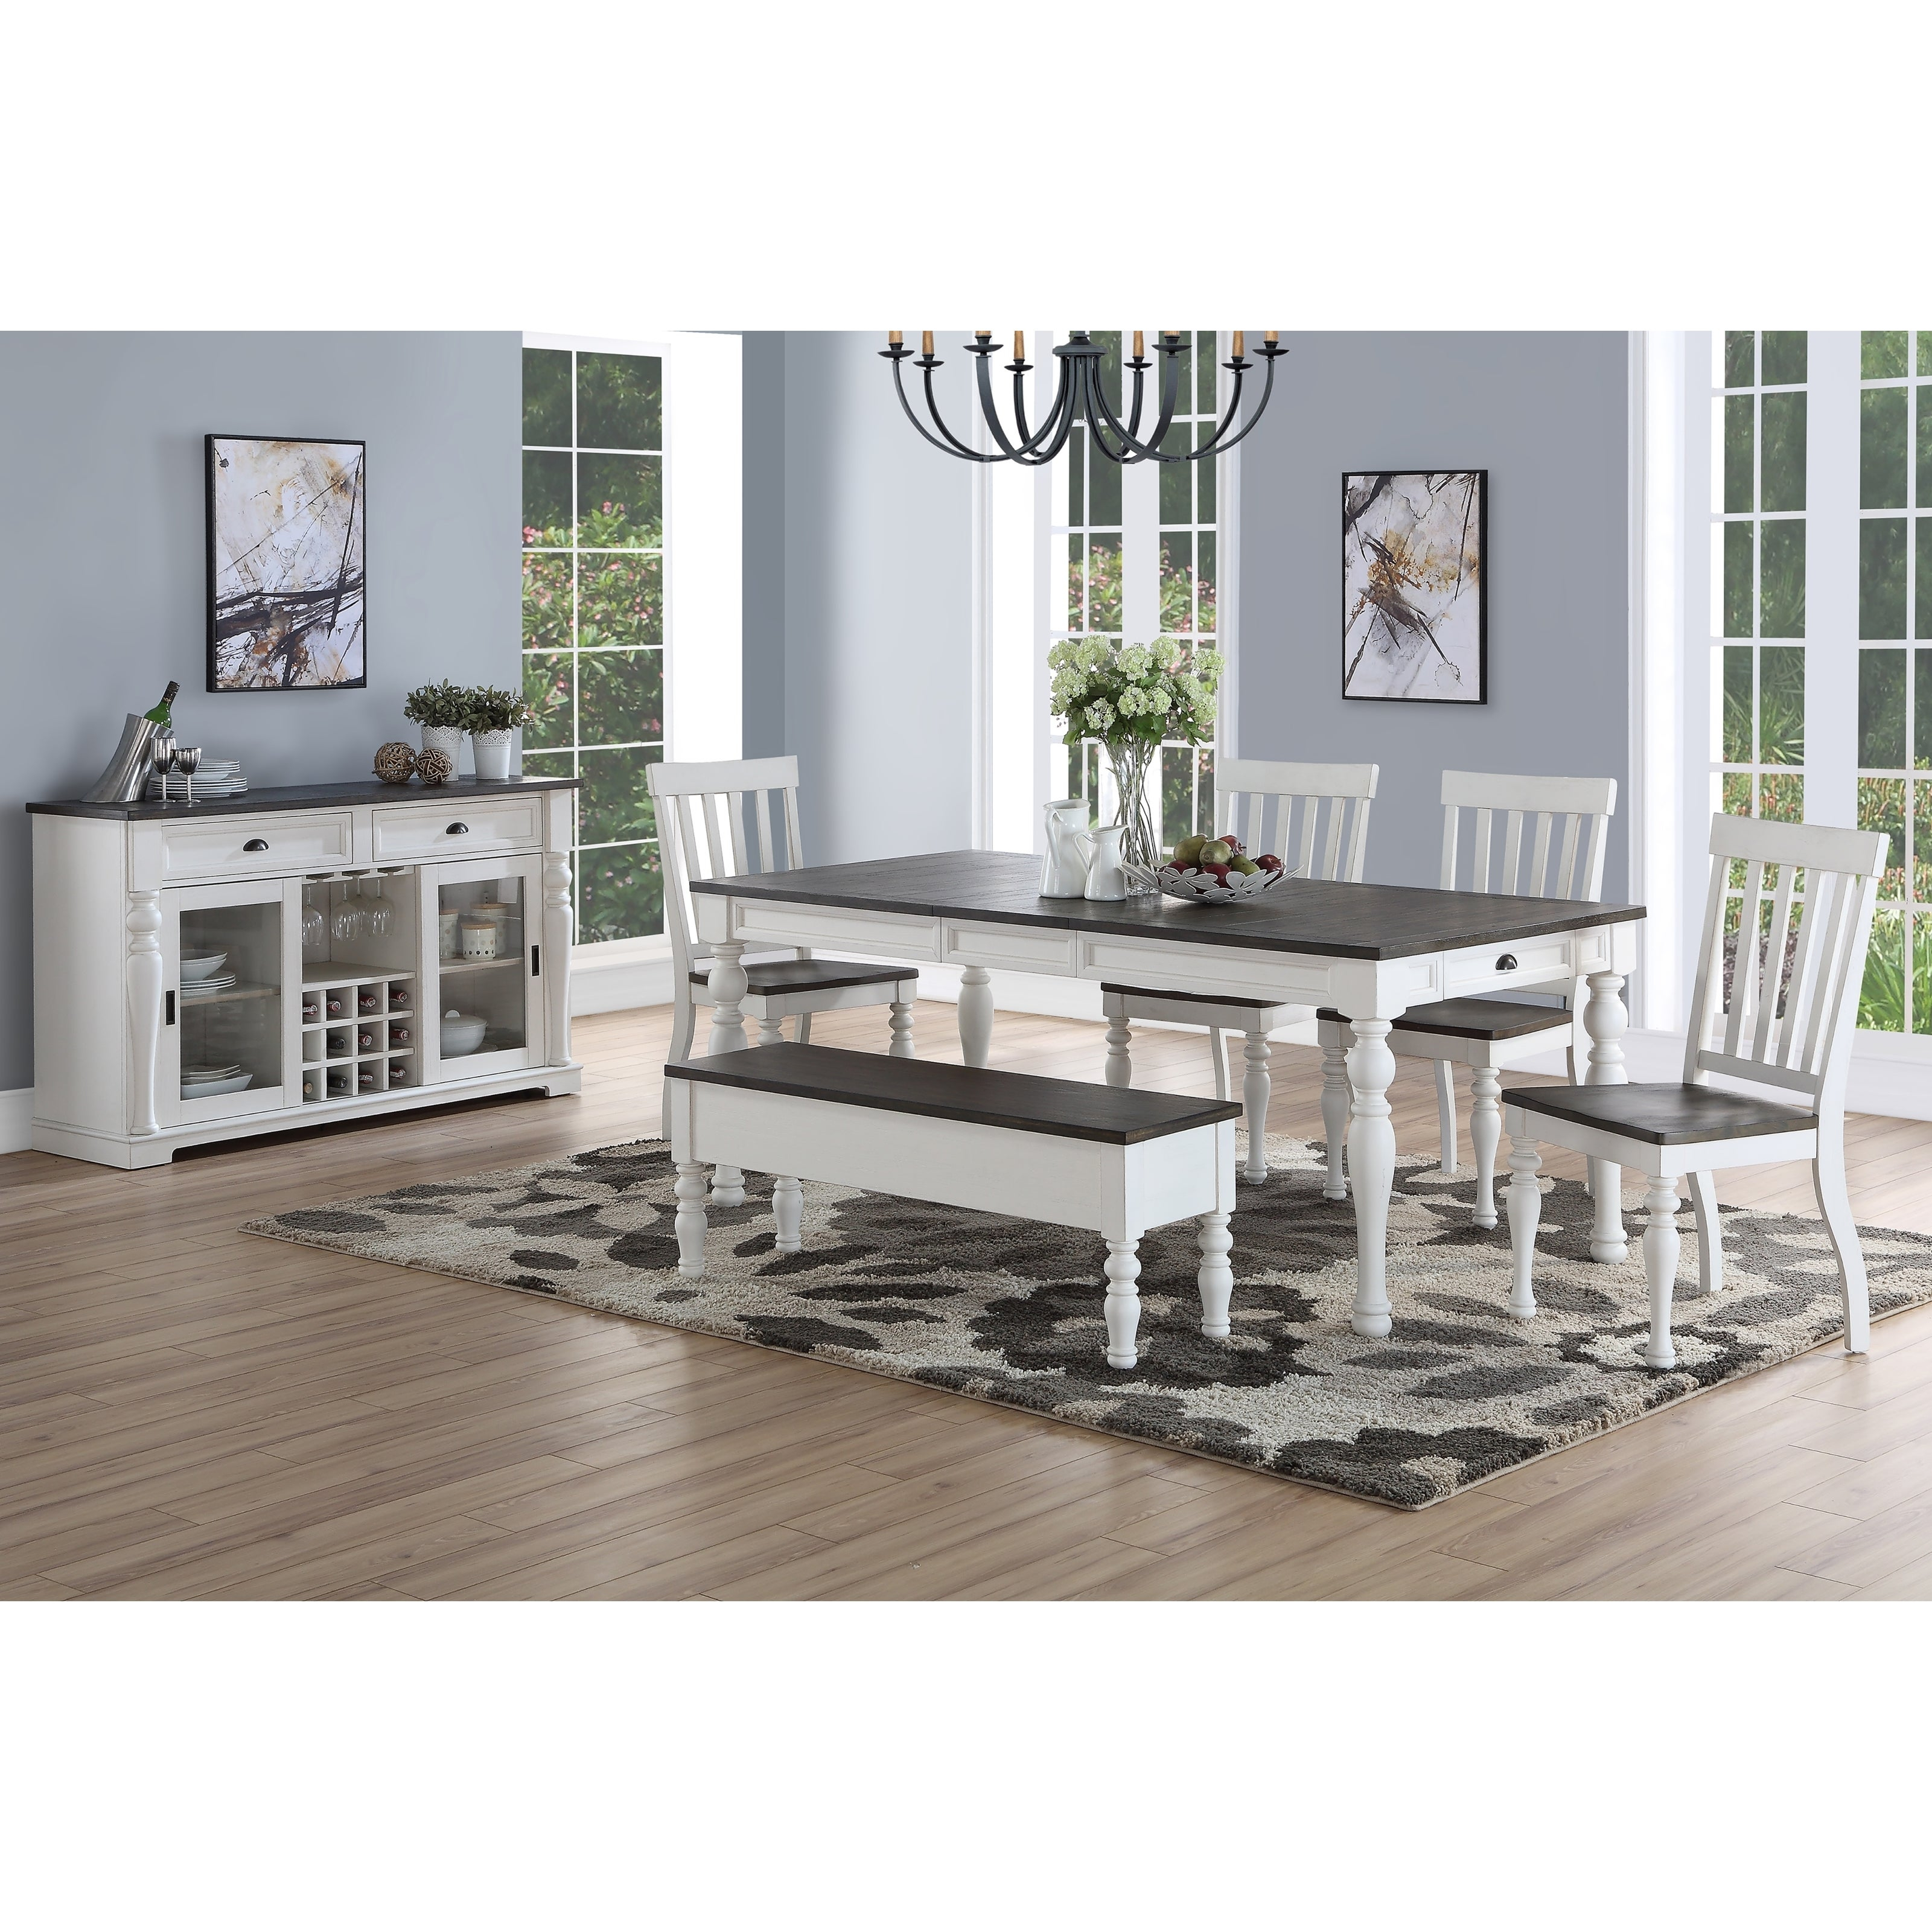 Buy 6 Piece Sets Kitchen & Dining Room Sets Online At Overstock Pertaining To 2018 Osterman 6 Piece Extendable Dining Sets (Set Of 6) (View 2 of 20)